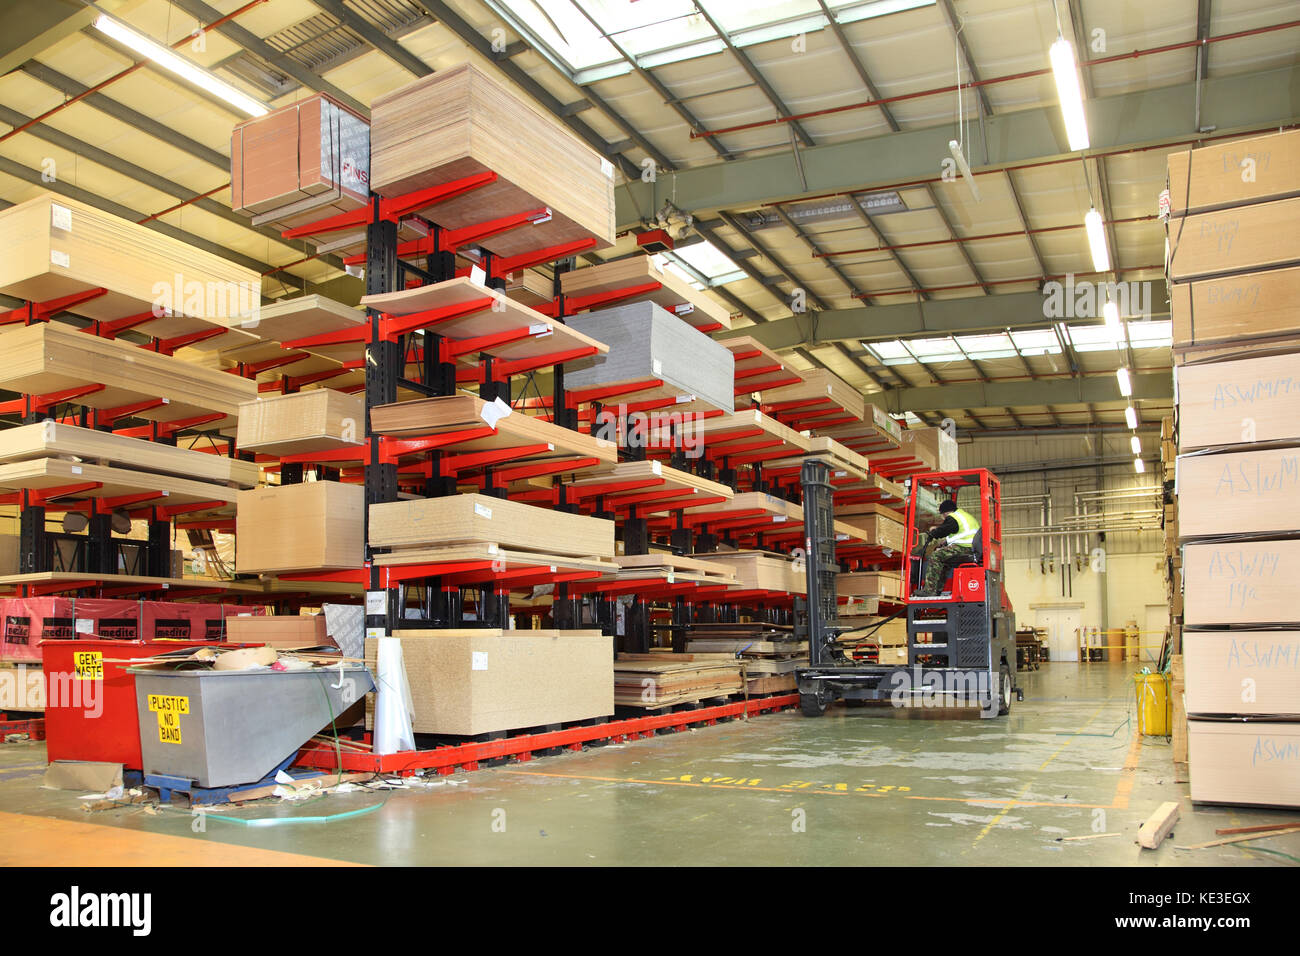 A fork lift truck removes timber sheet products stacked in a modern, UK distribution warehouse. - Stock Image